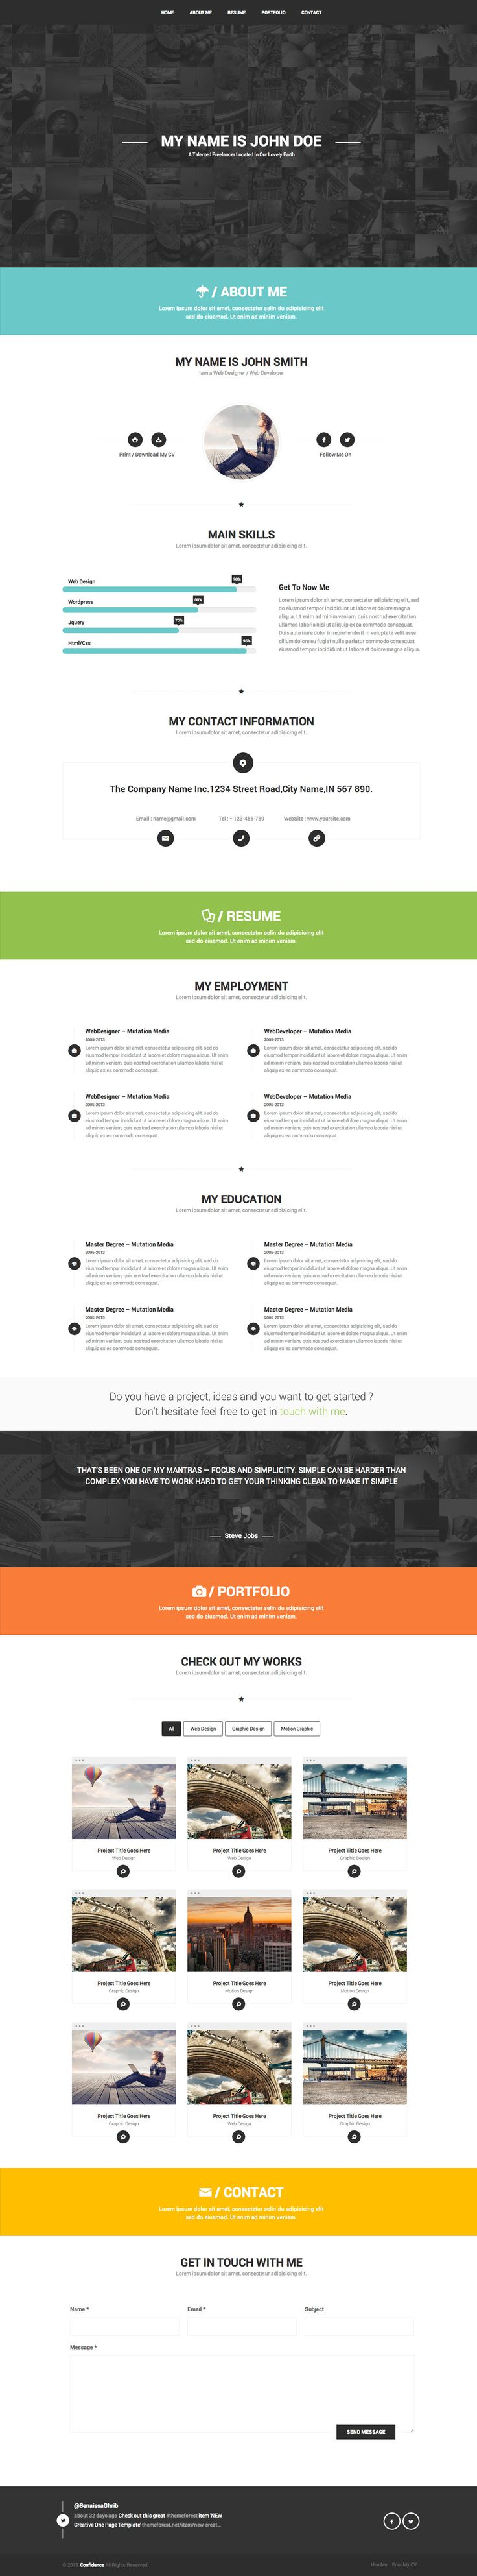 best ideas about online cv online cv template 17 best ideas about online cv online cv template online resume and web developer portfolio